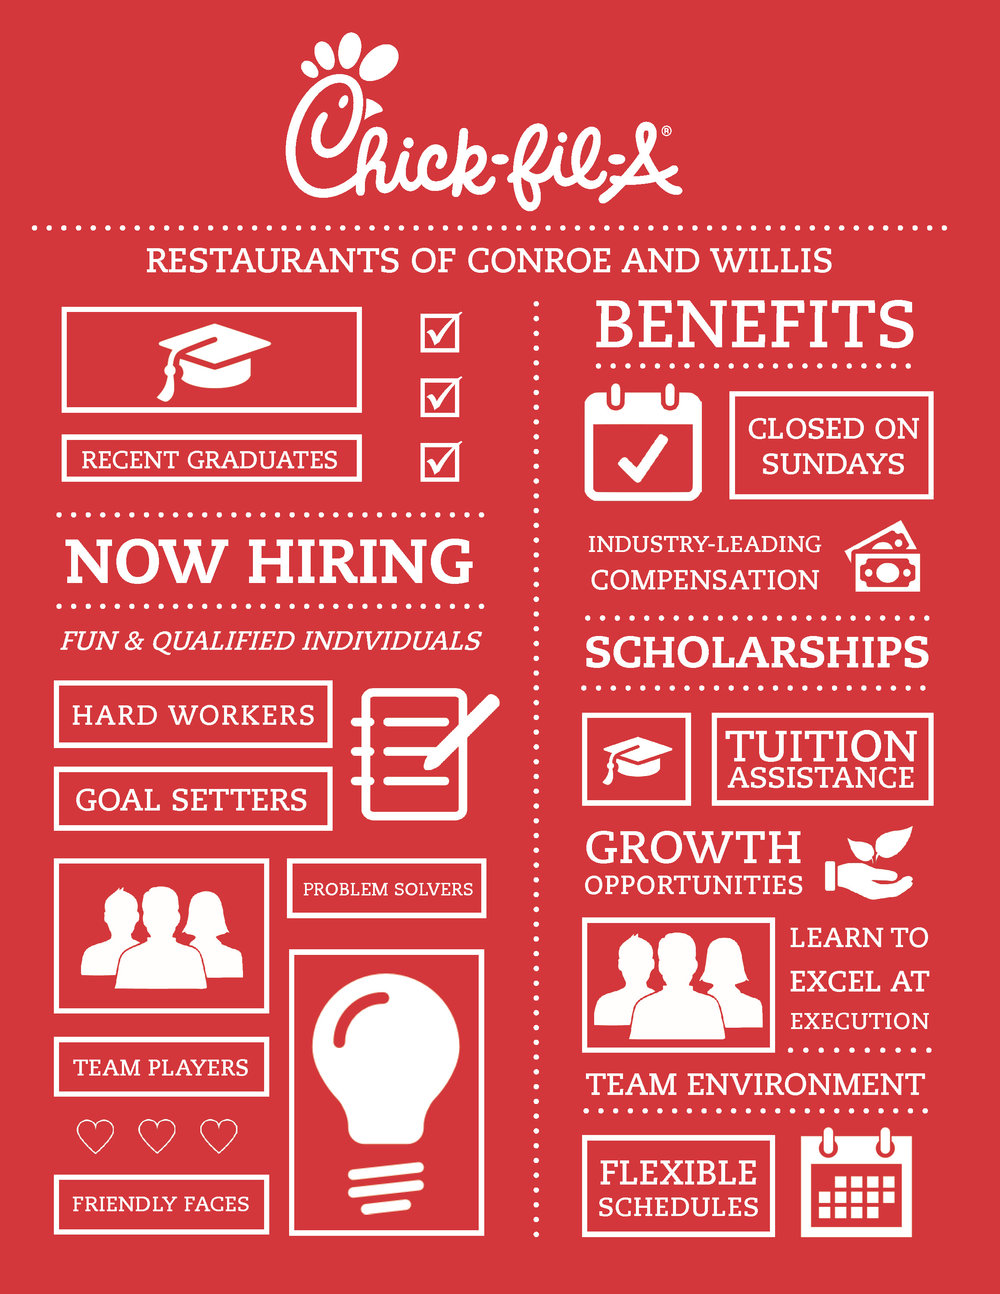 Join Our Team! - The Chick-fil-A Restaurants of Conroe and Willis is always looking for talented employees to help grow our business. If you are interested in joining our team, applications may be filled out and turned in either of our locations. Find more information about the benefits we offer our Team Members below.